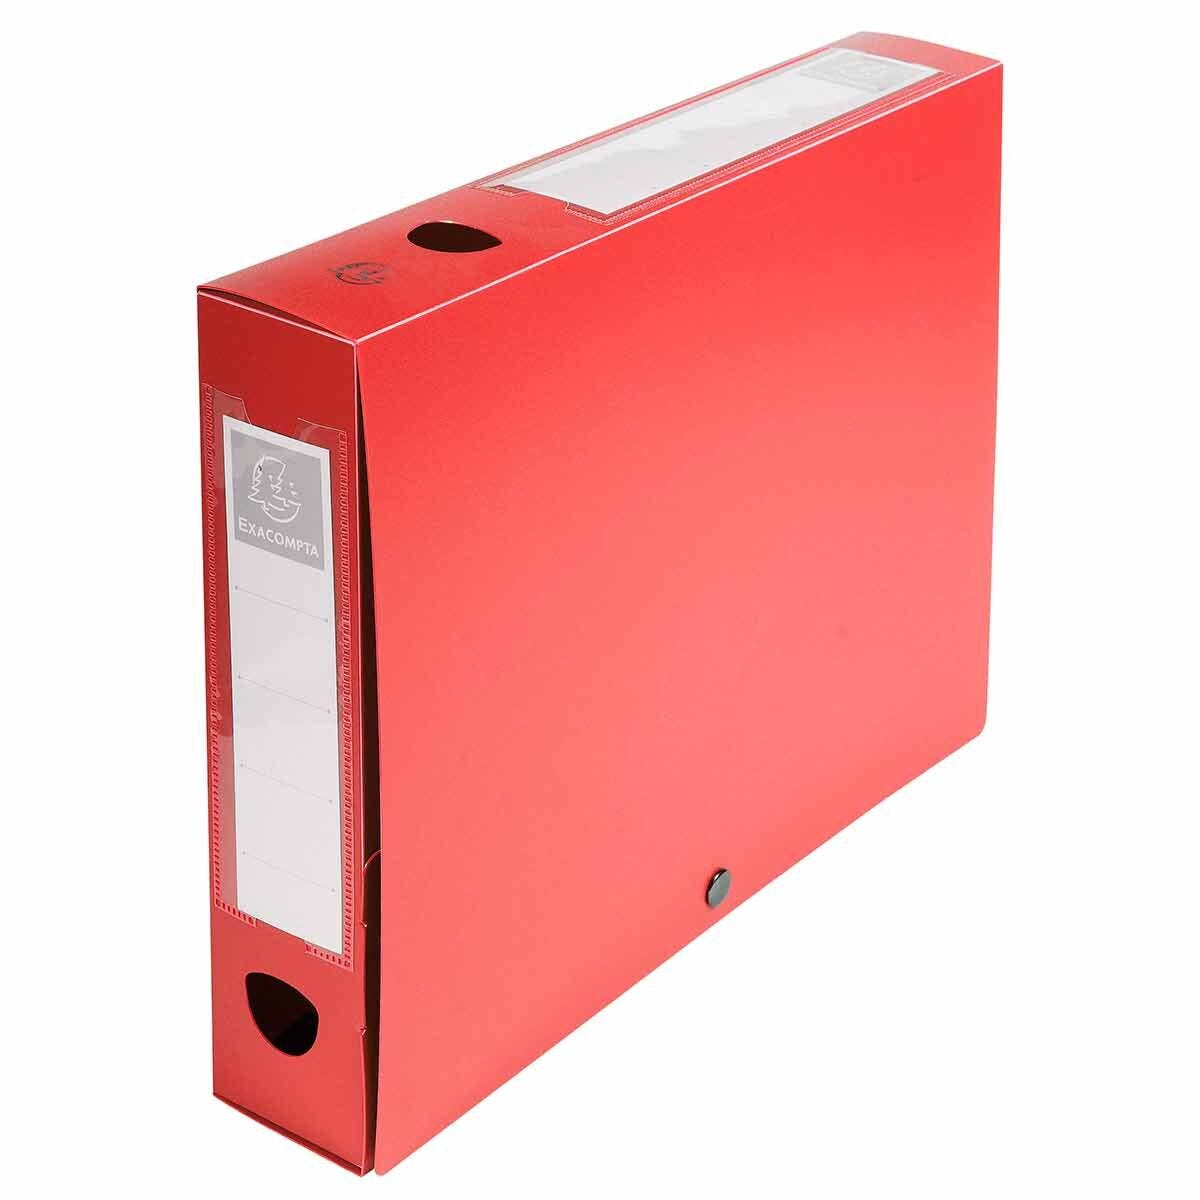 Exacompta Press Stud Opaque Filing Box 60mm Spine A4 Pack of 10 Red